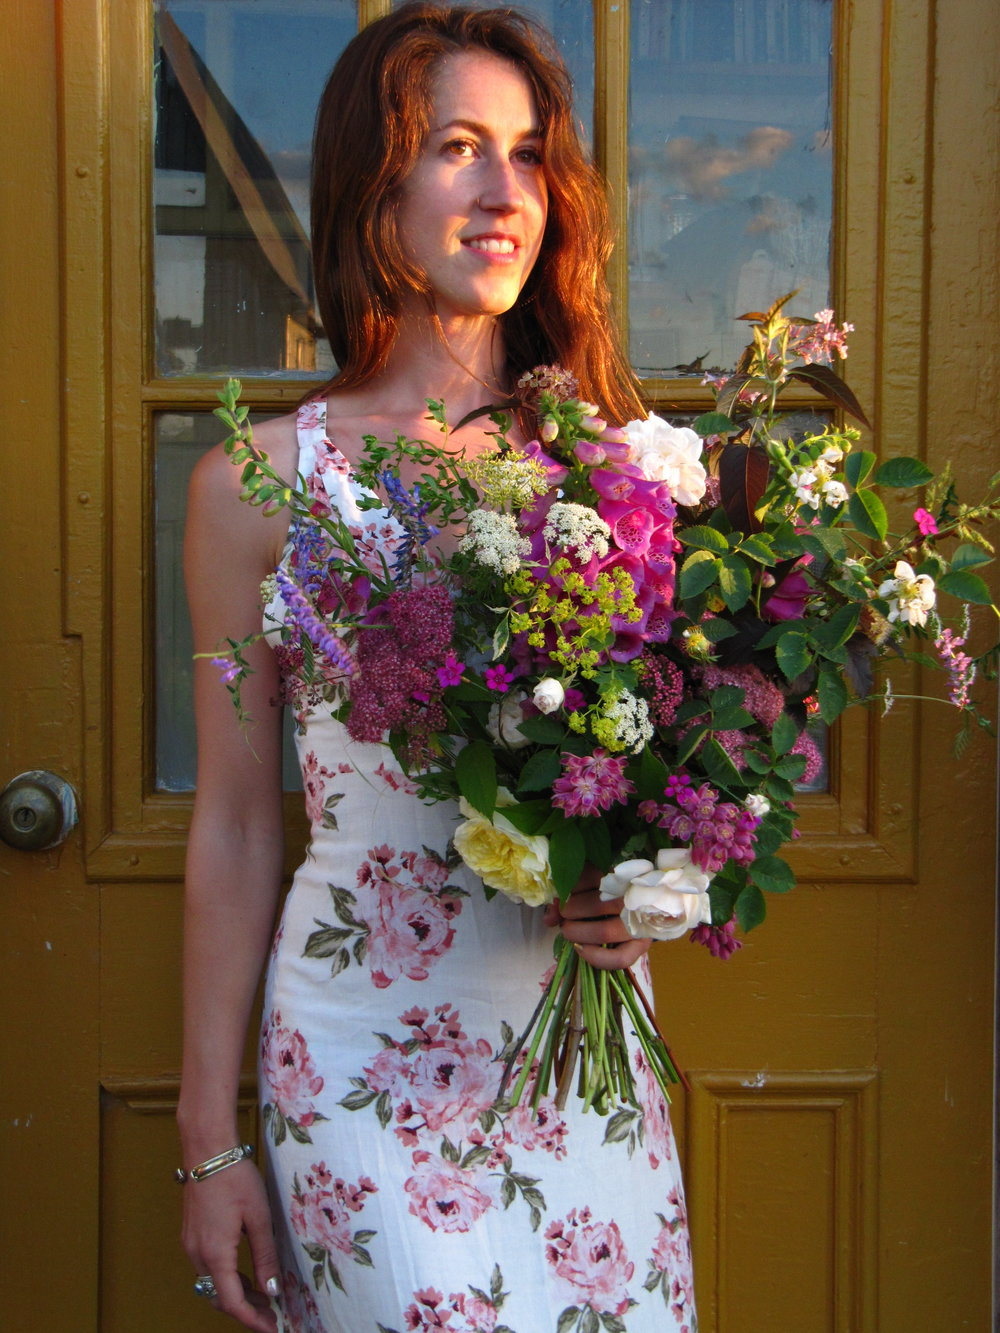 Halifax bouquet subscription / flower CSA 2018. Luxury hand-tied farm fresh flowers. Hedgerow Flower Company (flower farm and florist), Nova Scotia, Canada.